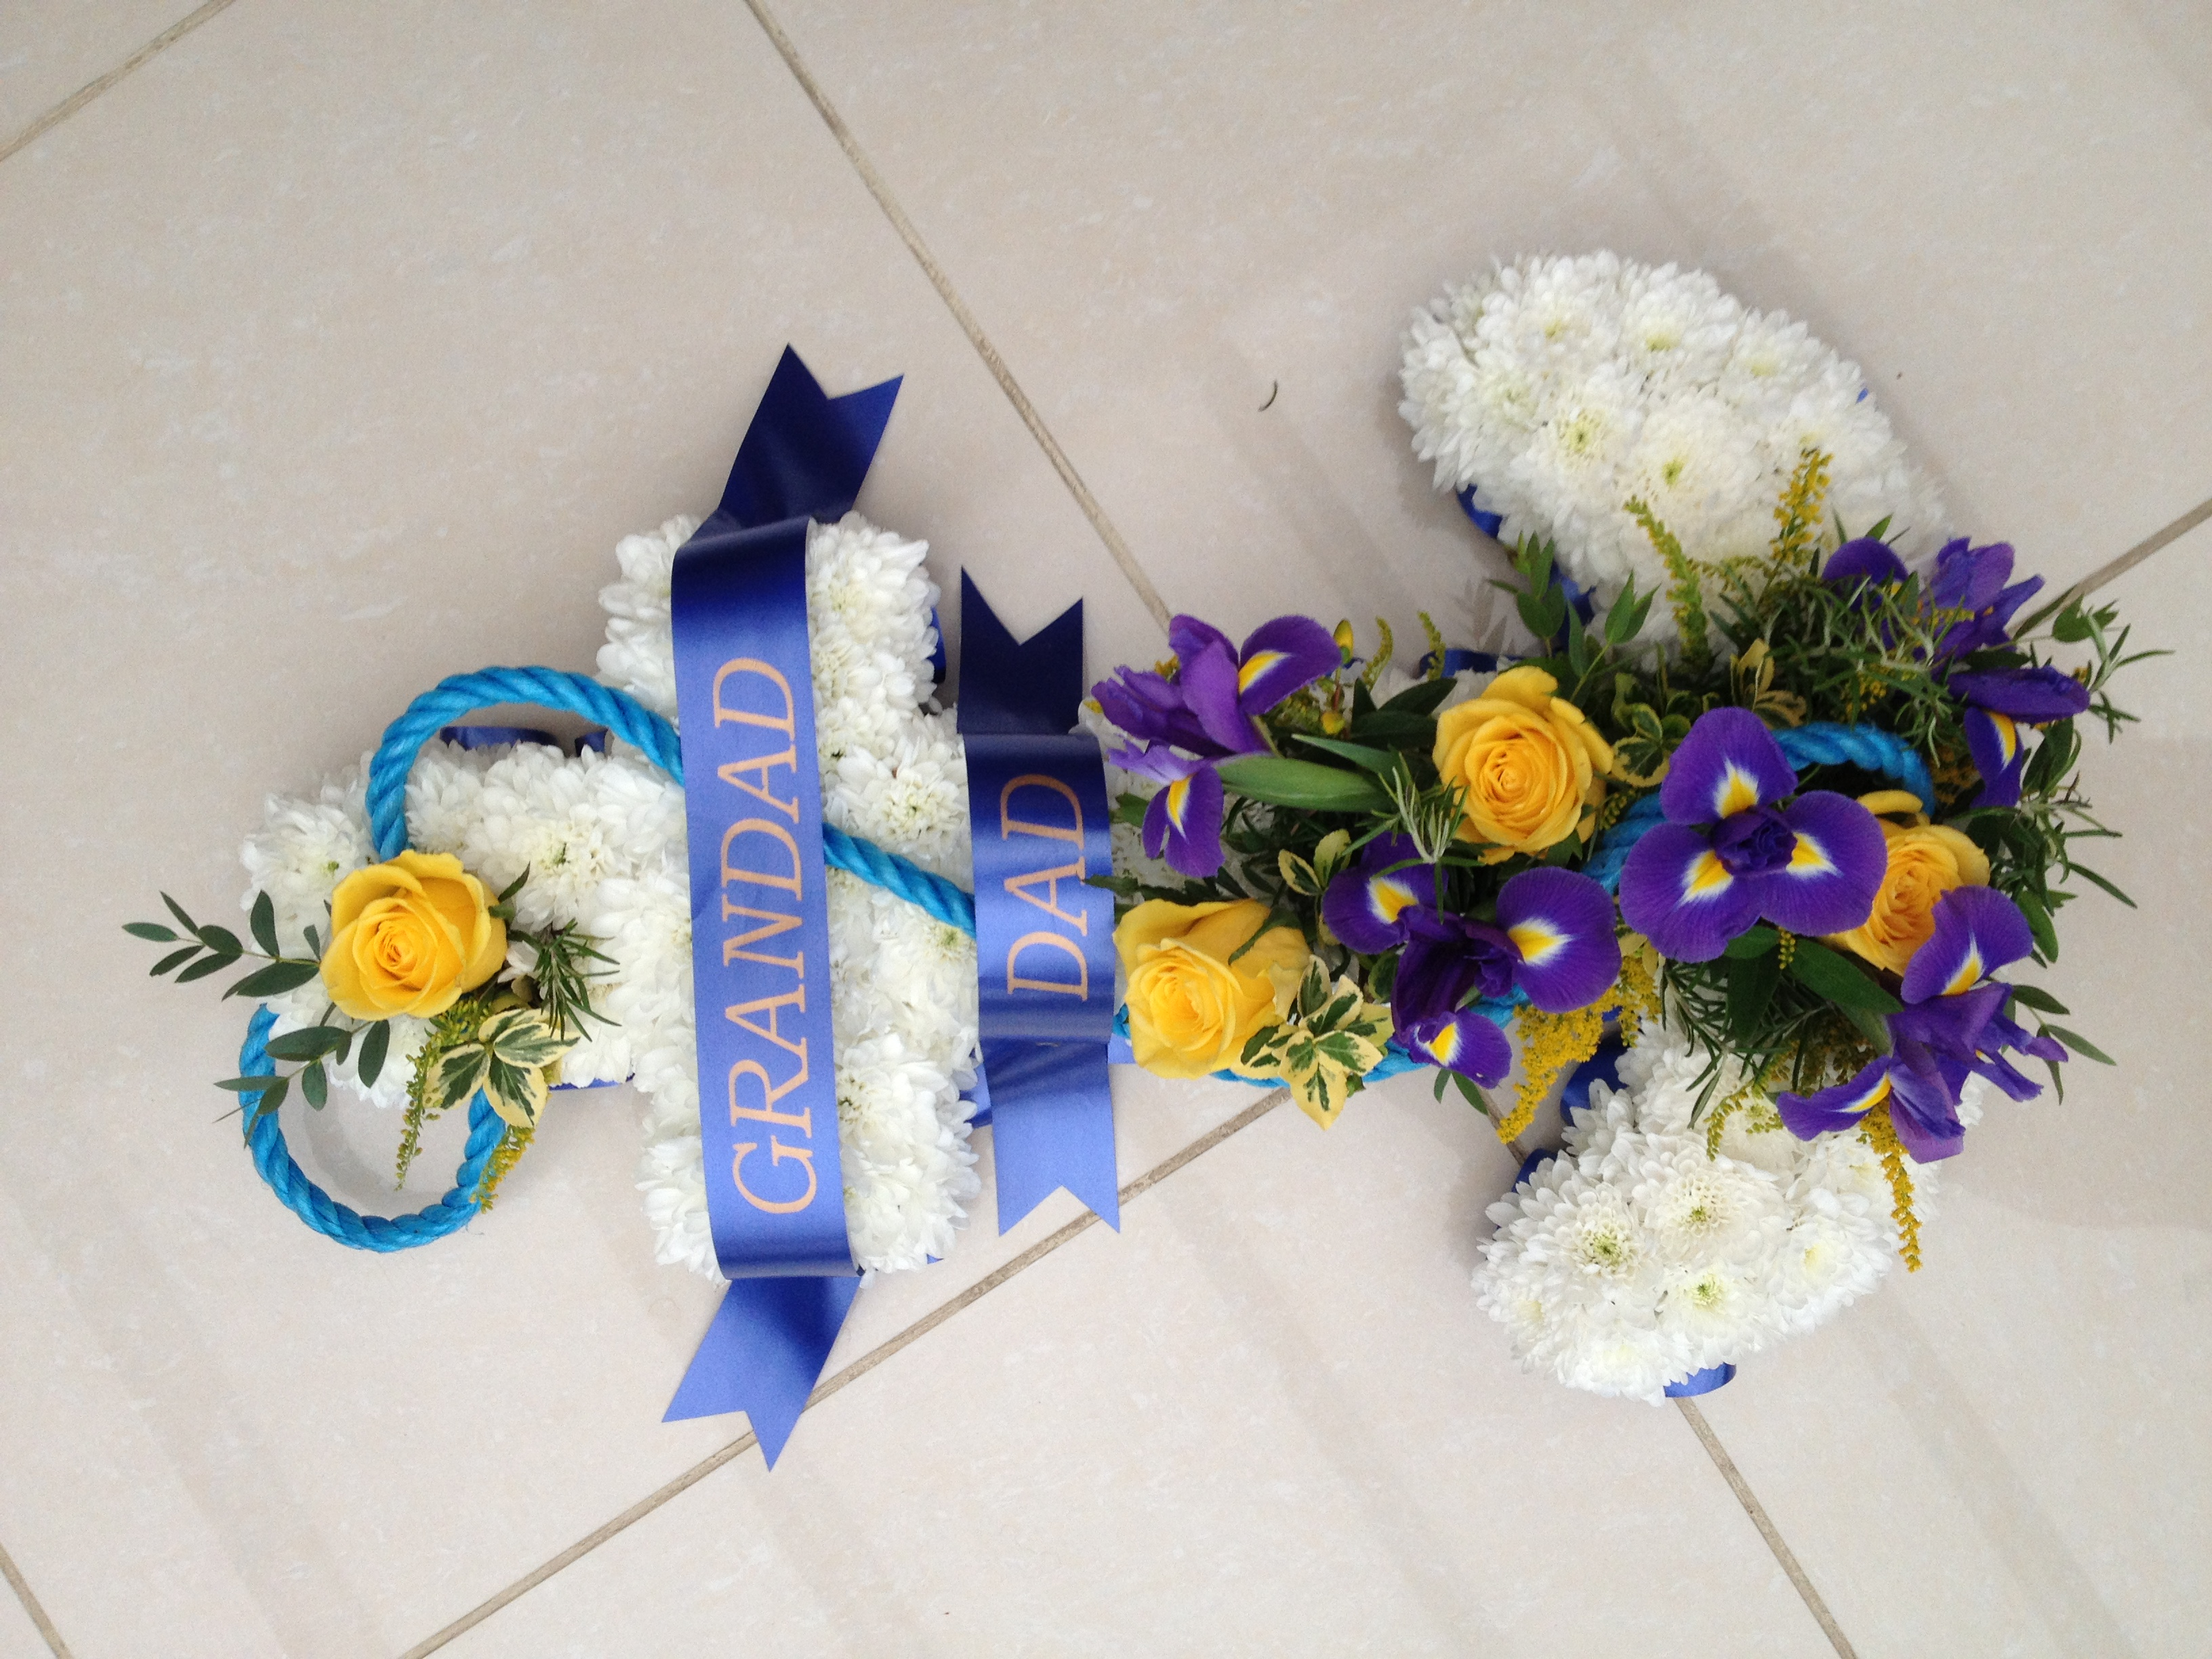 Blocked funeral tribute flowers a2 anchor 7500 izmirmasajfo